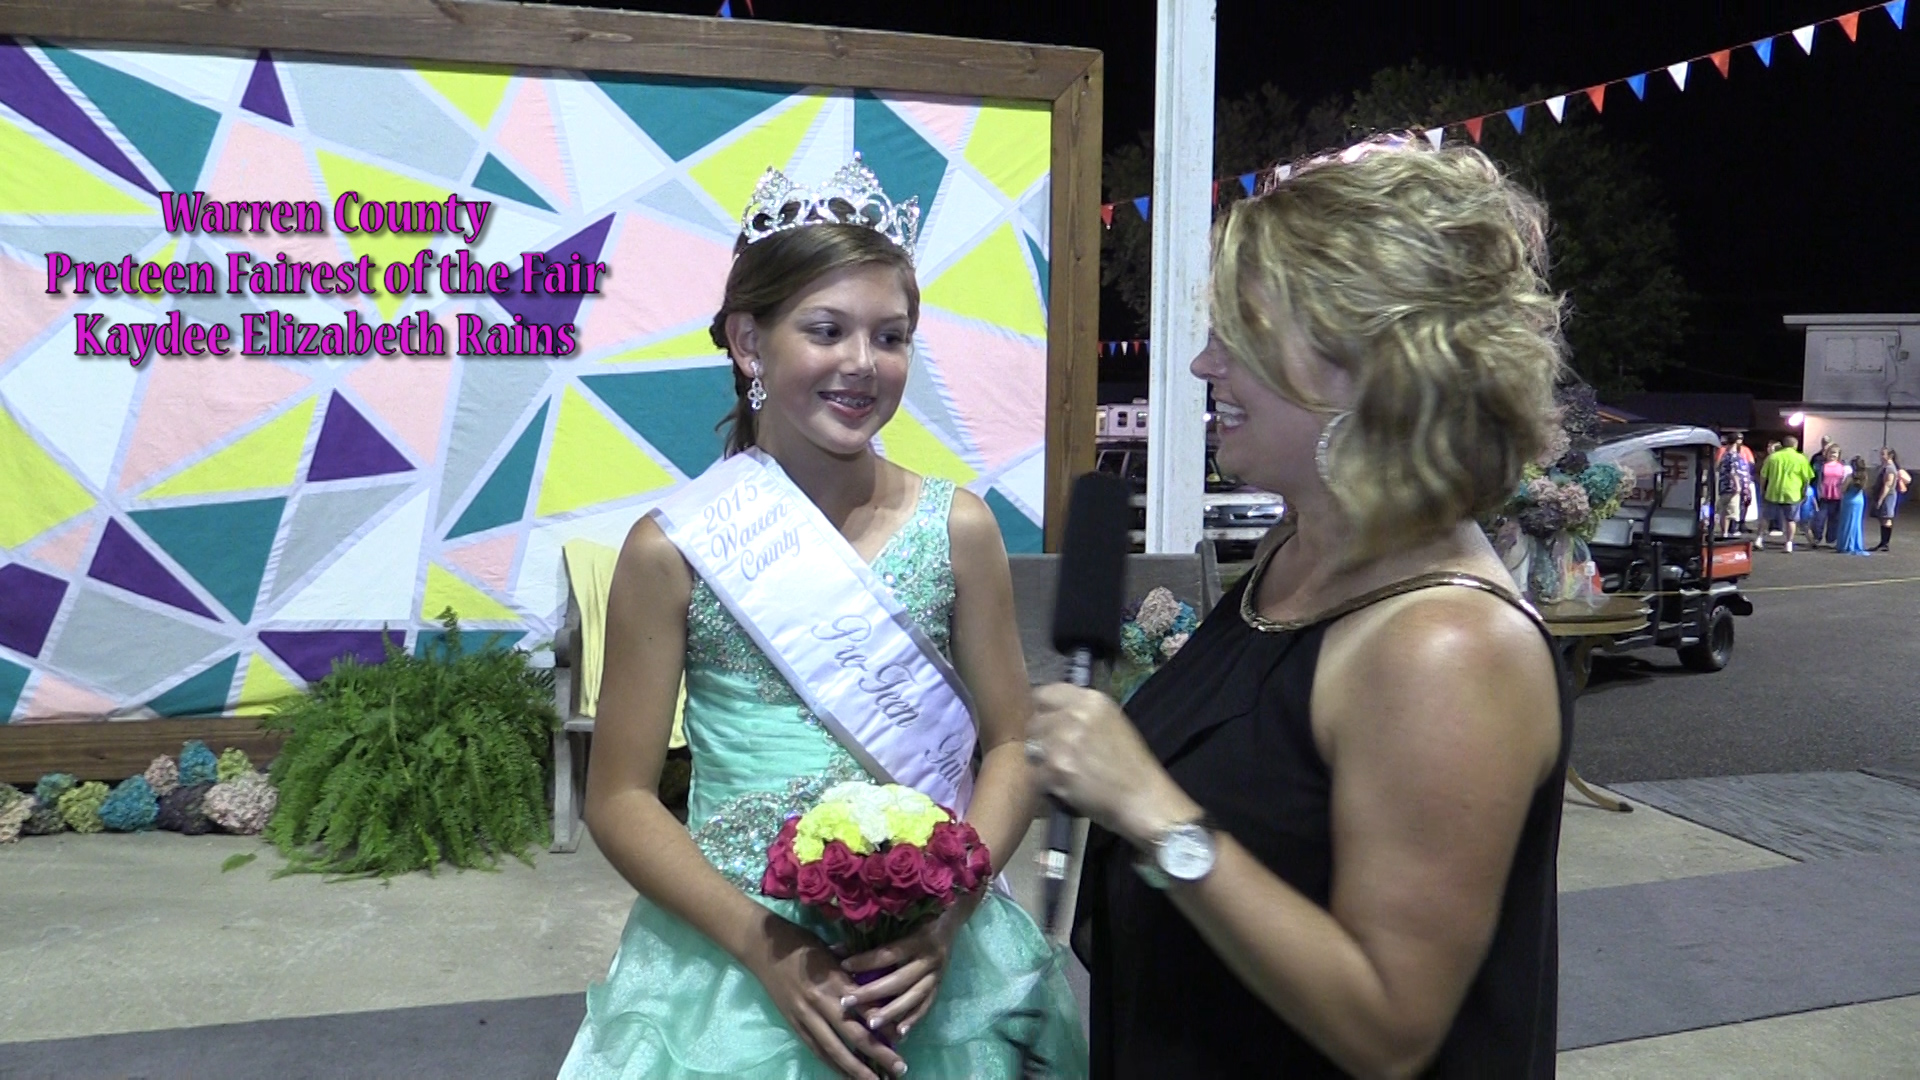 The Preteen Fairest is crowned at the fair